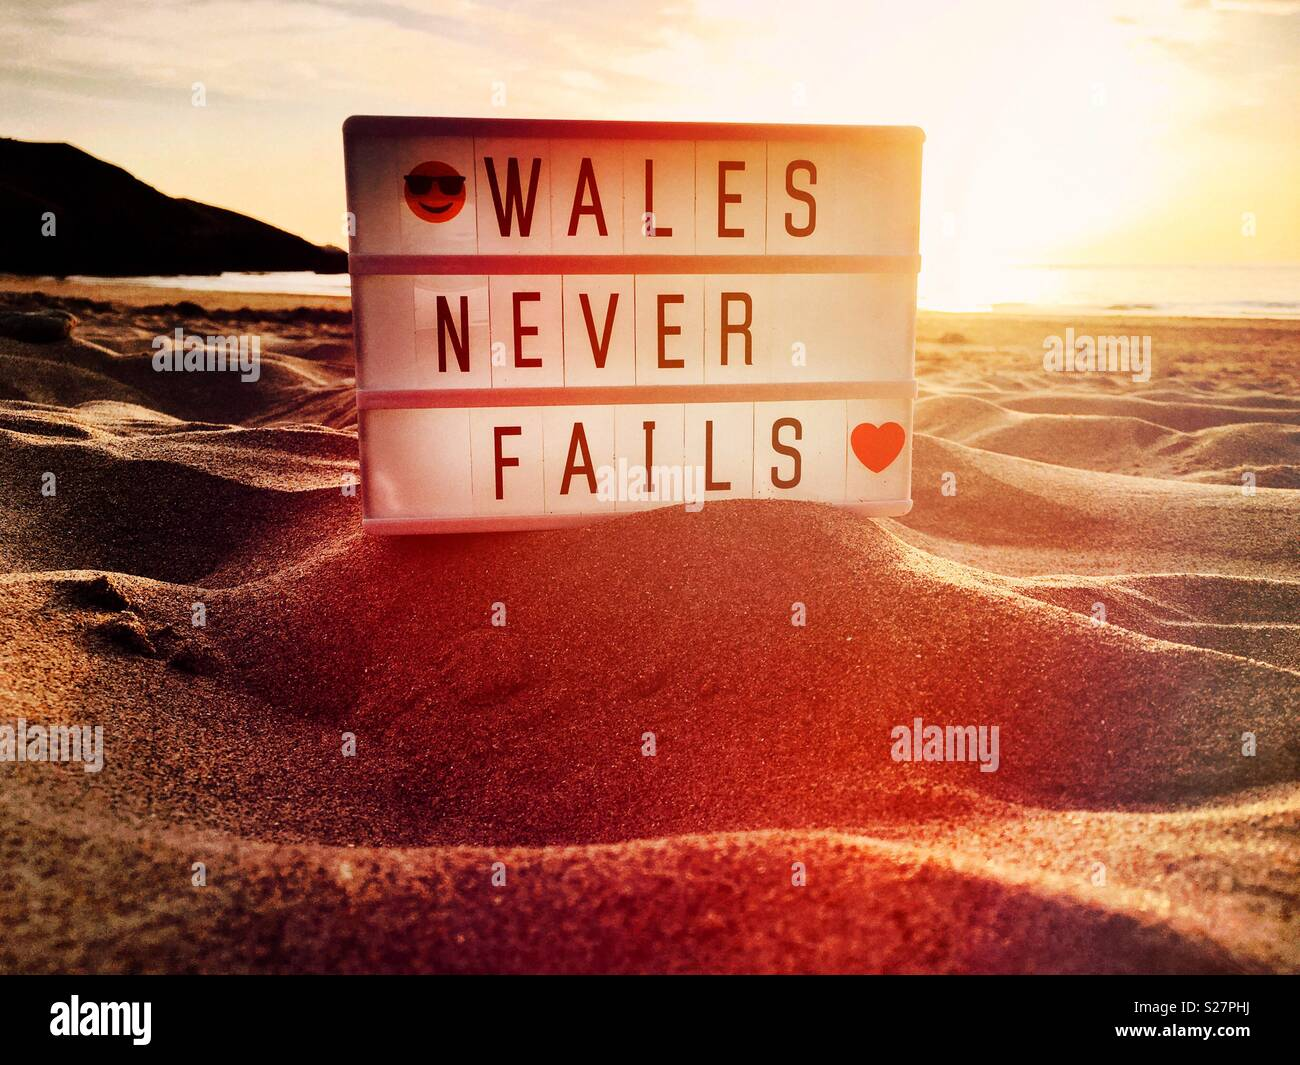 Wales never fails sign on a beach at sunset - Stock Image